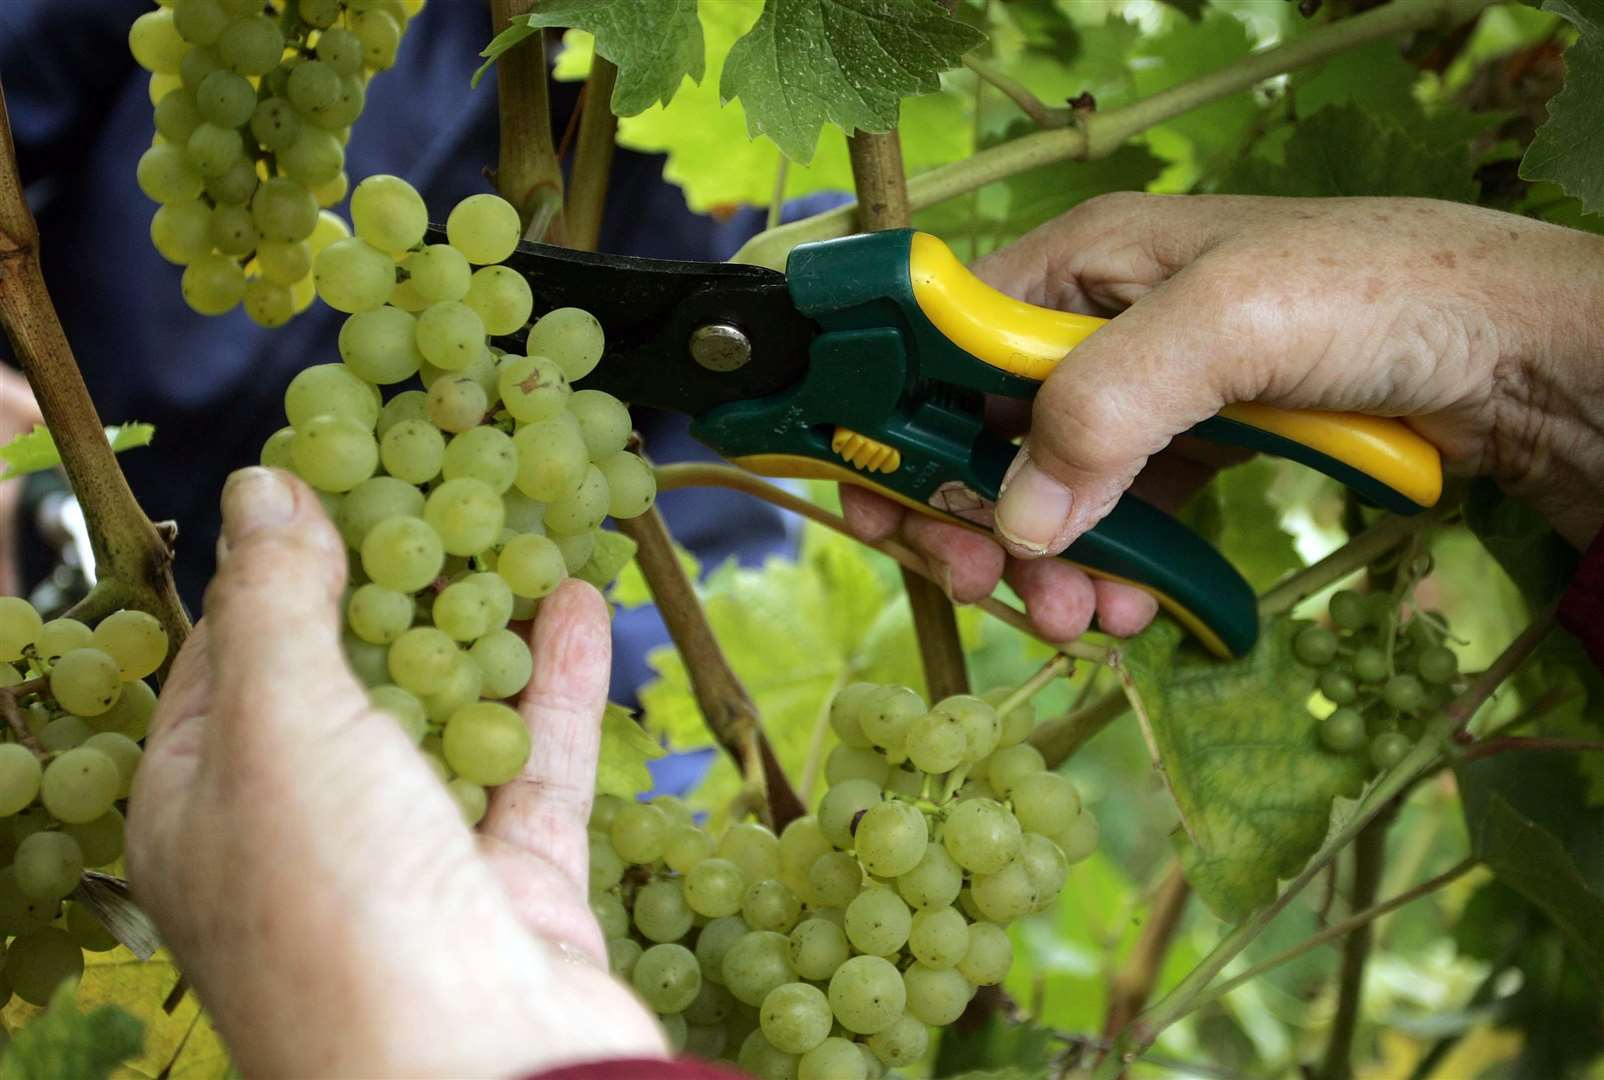 The grape harvest is set to deliver a bumper crop this year - enhancing the optimism among Kent's wine producers